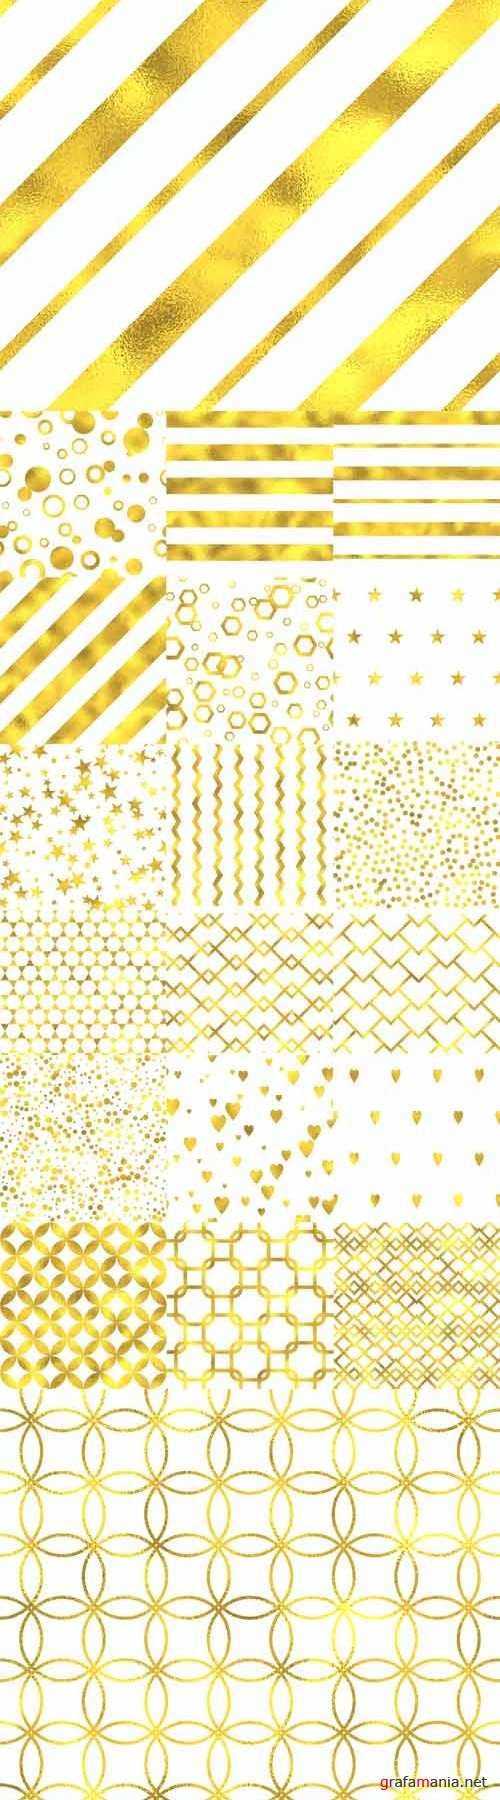 Vector Gold Glittering Foil Seamless Pattern Backgrounds